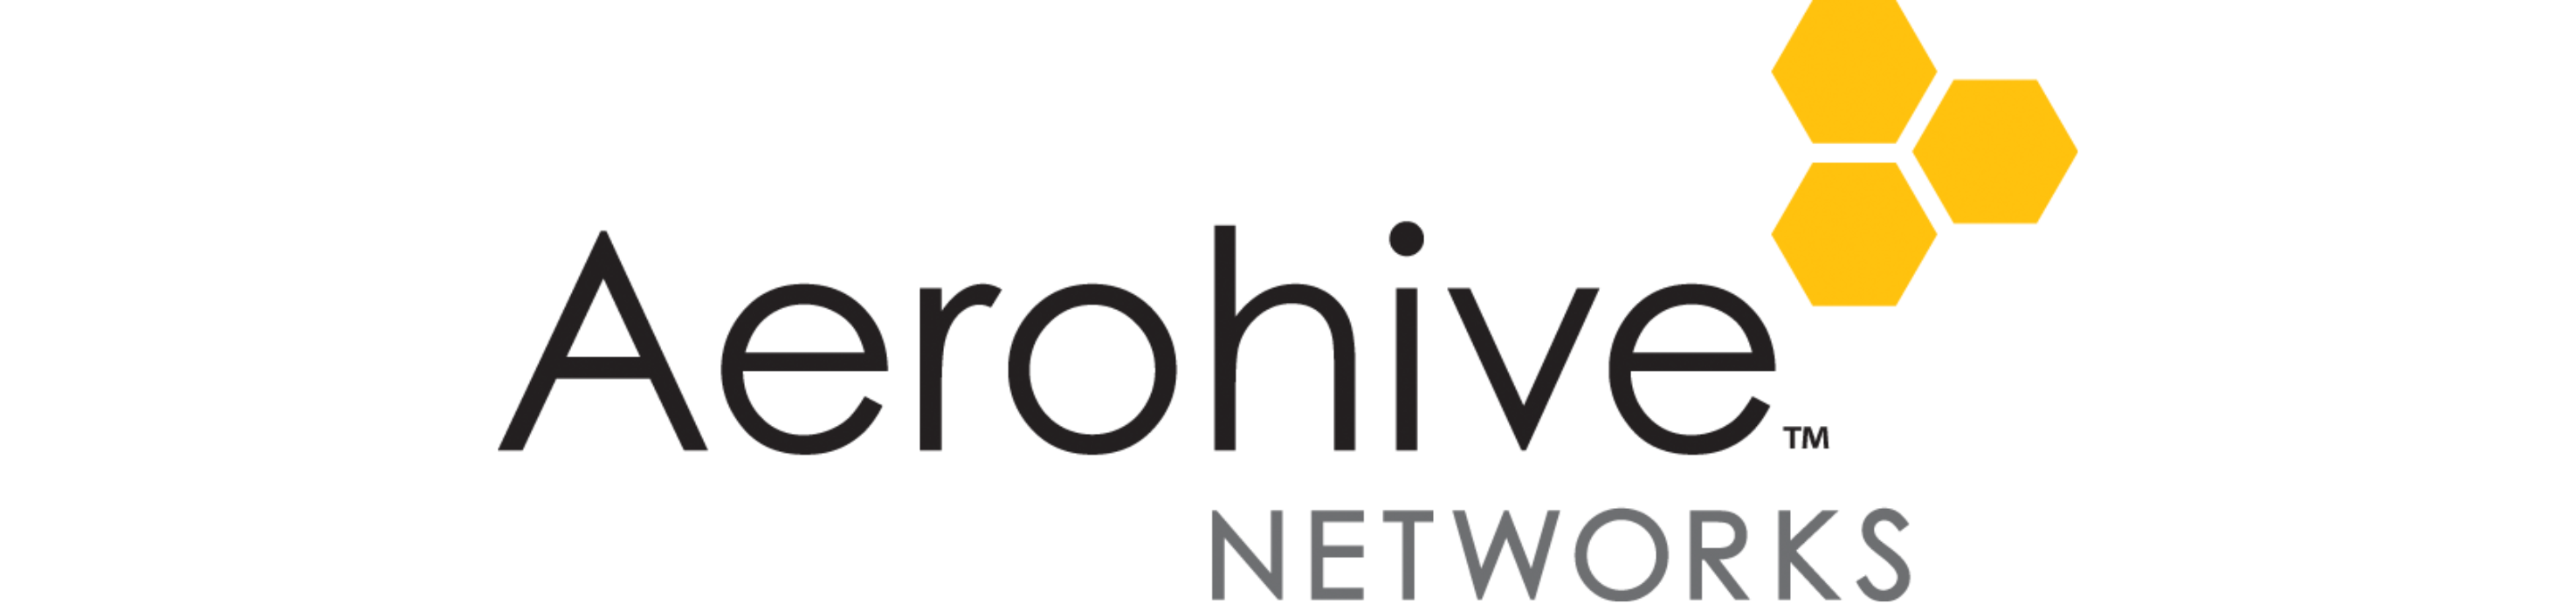 Aerohive - Value Added Reseller Partner